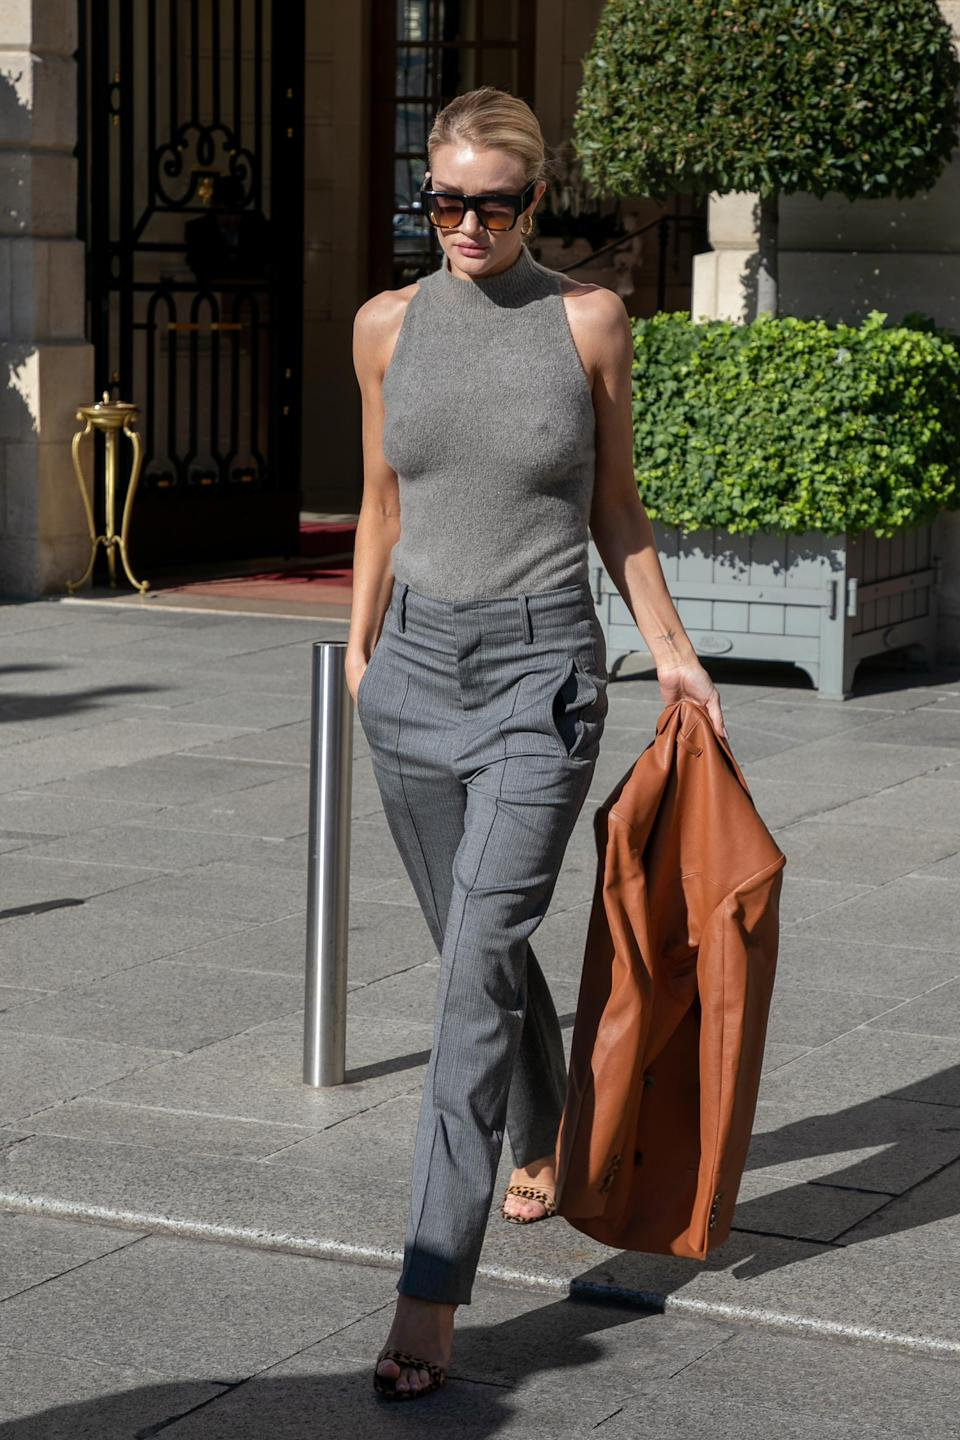 <p>There's something a bit 70s working girl about Rosie Huntington-Whiteley's Paris get up. We love everything from the tailored trousers to the tan leather jacket and oversized sunglasses. <br>[Photo: Getty] </p>